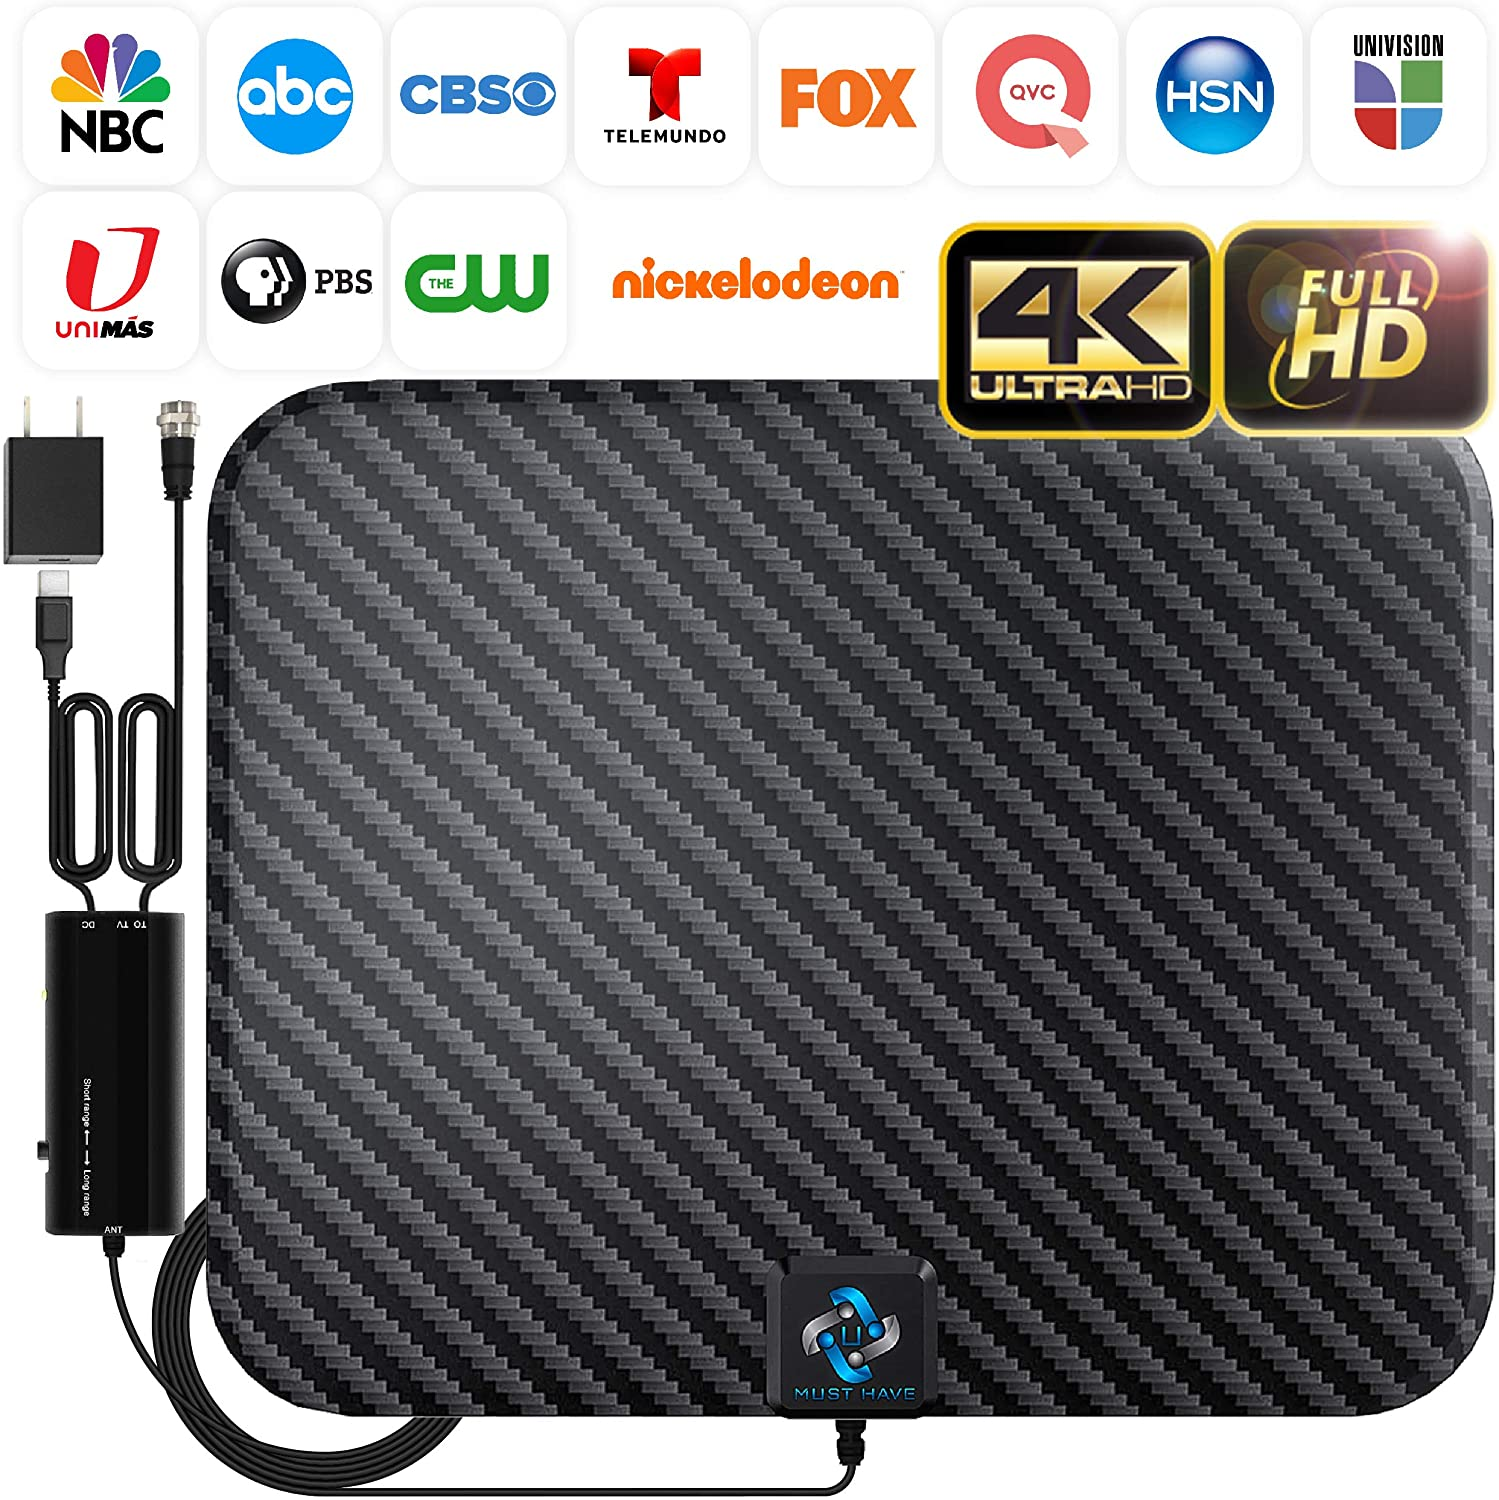 U MUST HAVE Amplified Indoor Smart Switch HD Digital TV Antenna, 250-Mile Range